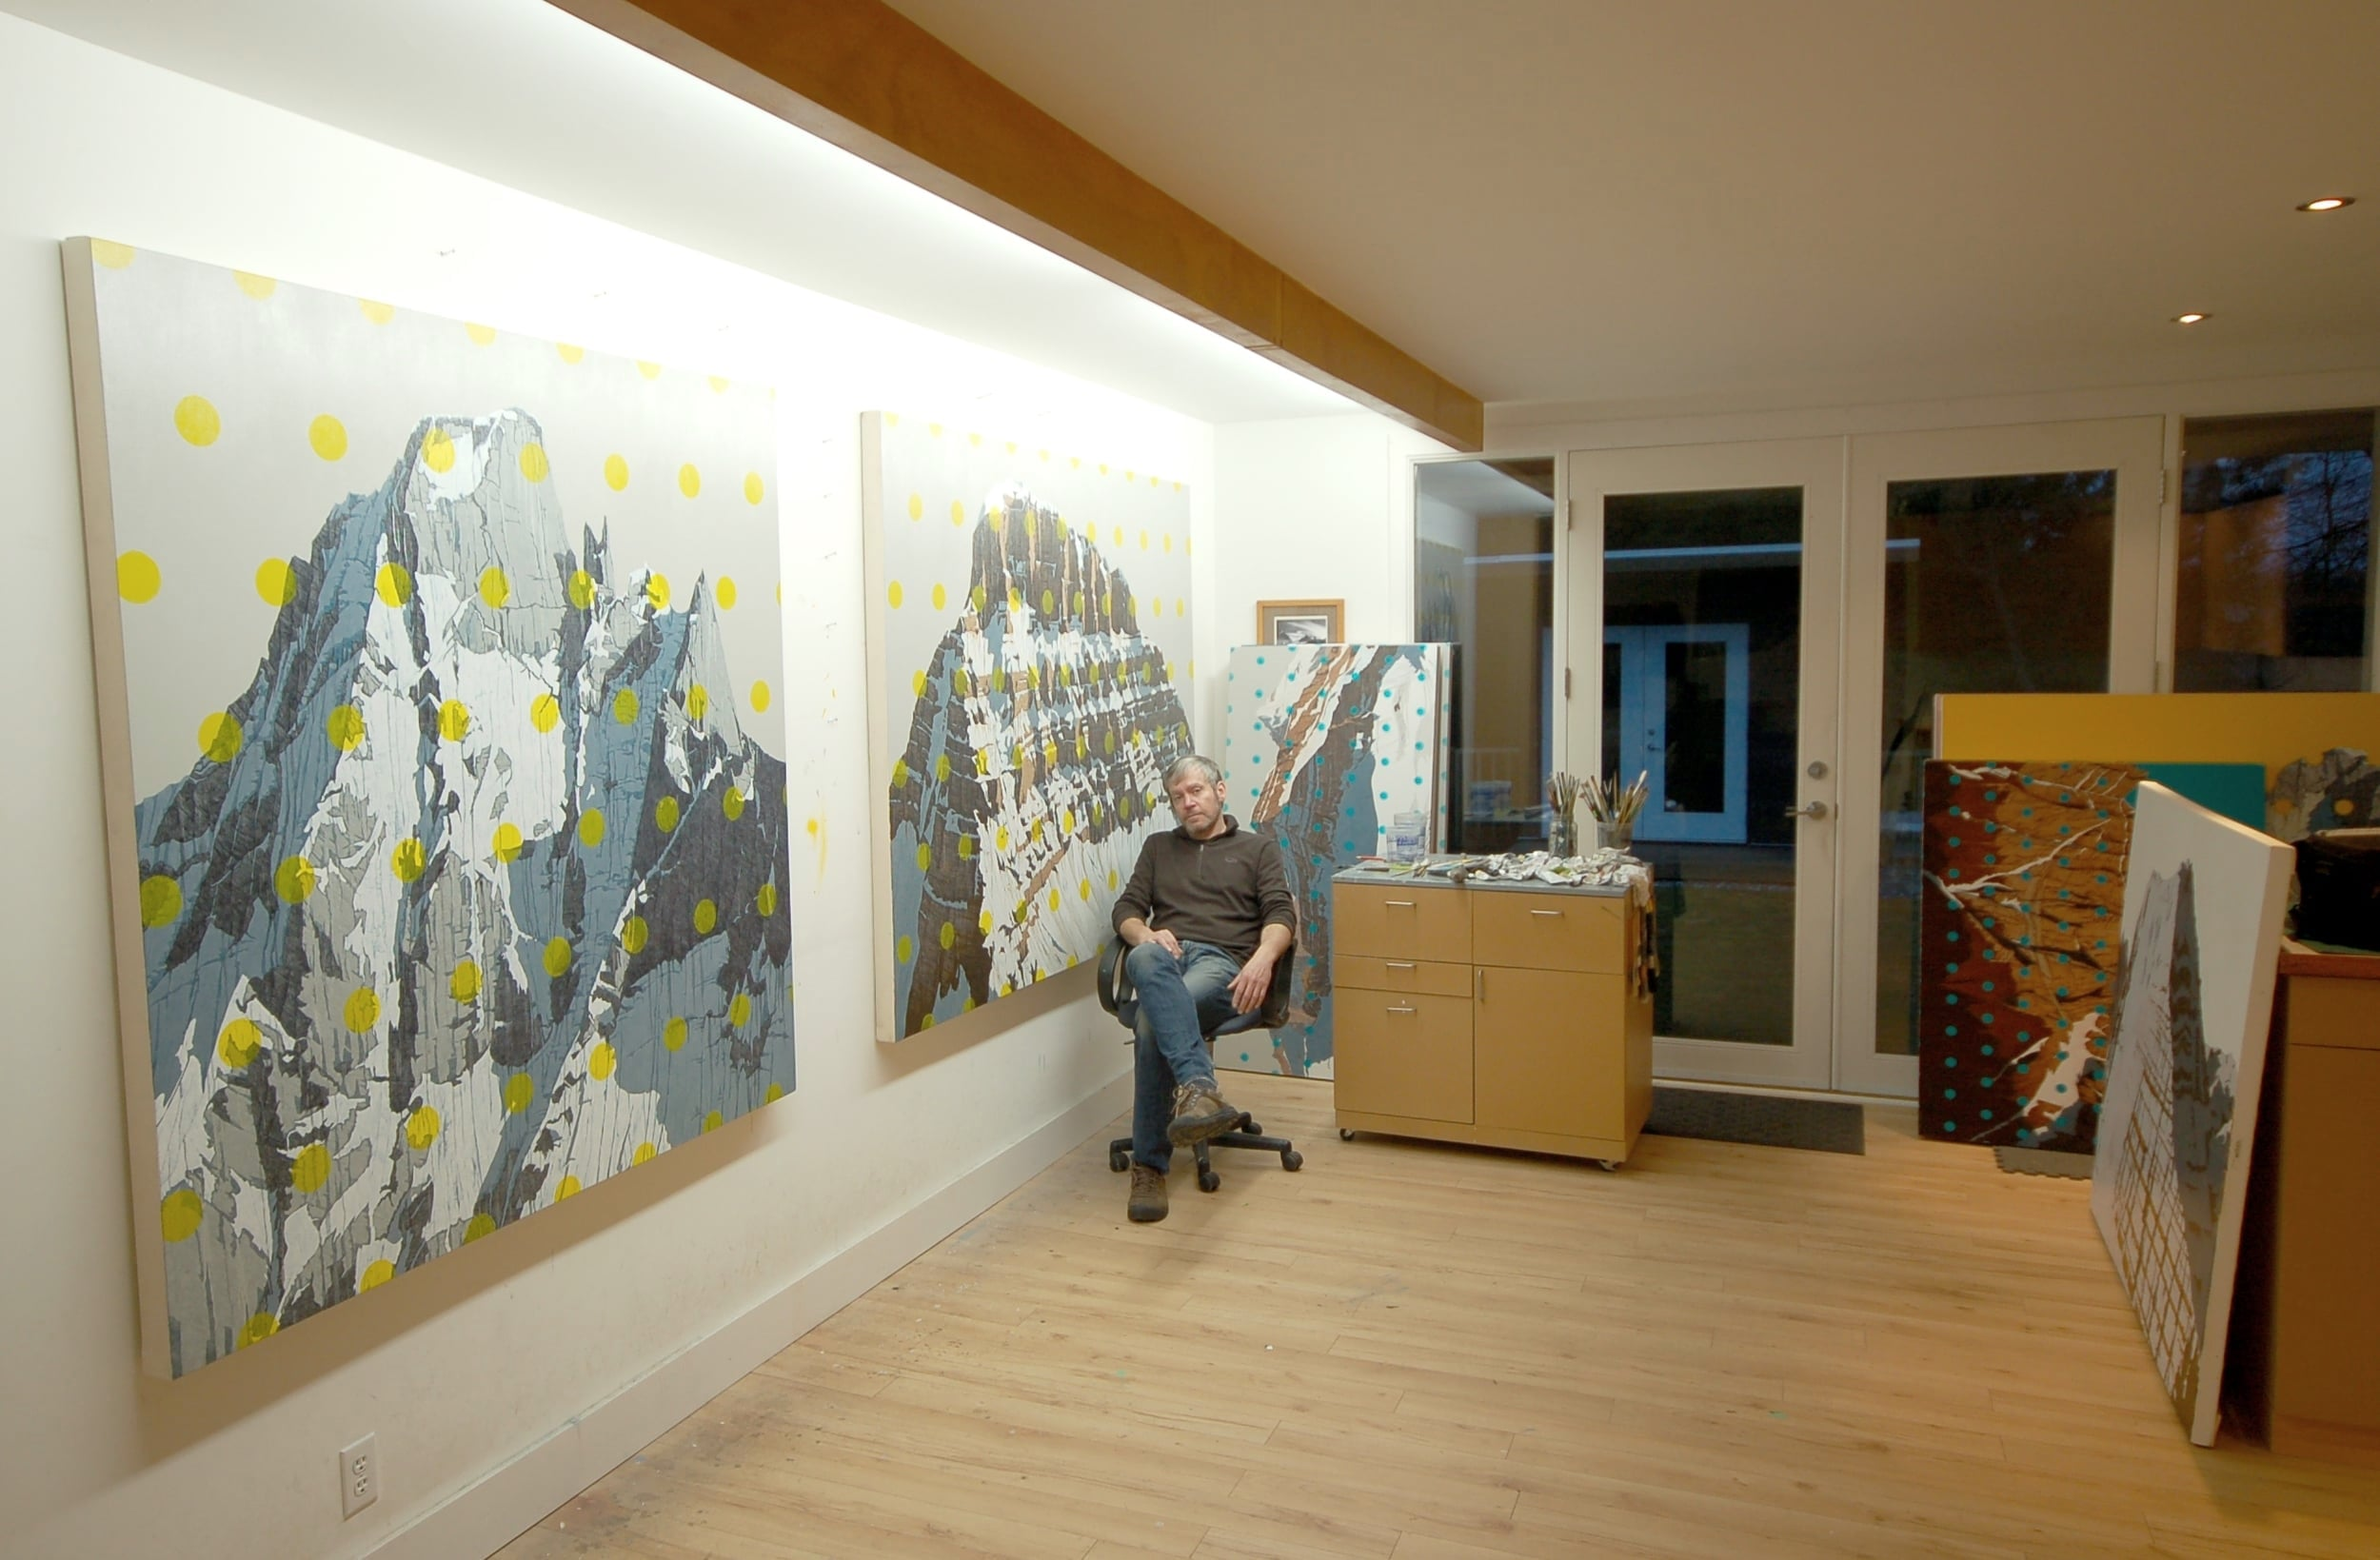 CoCo Artist David P. at his studio in Vancouver, Canada.